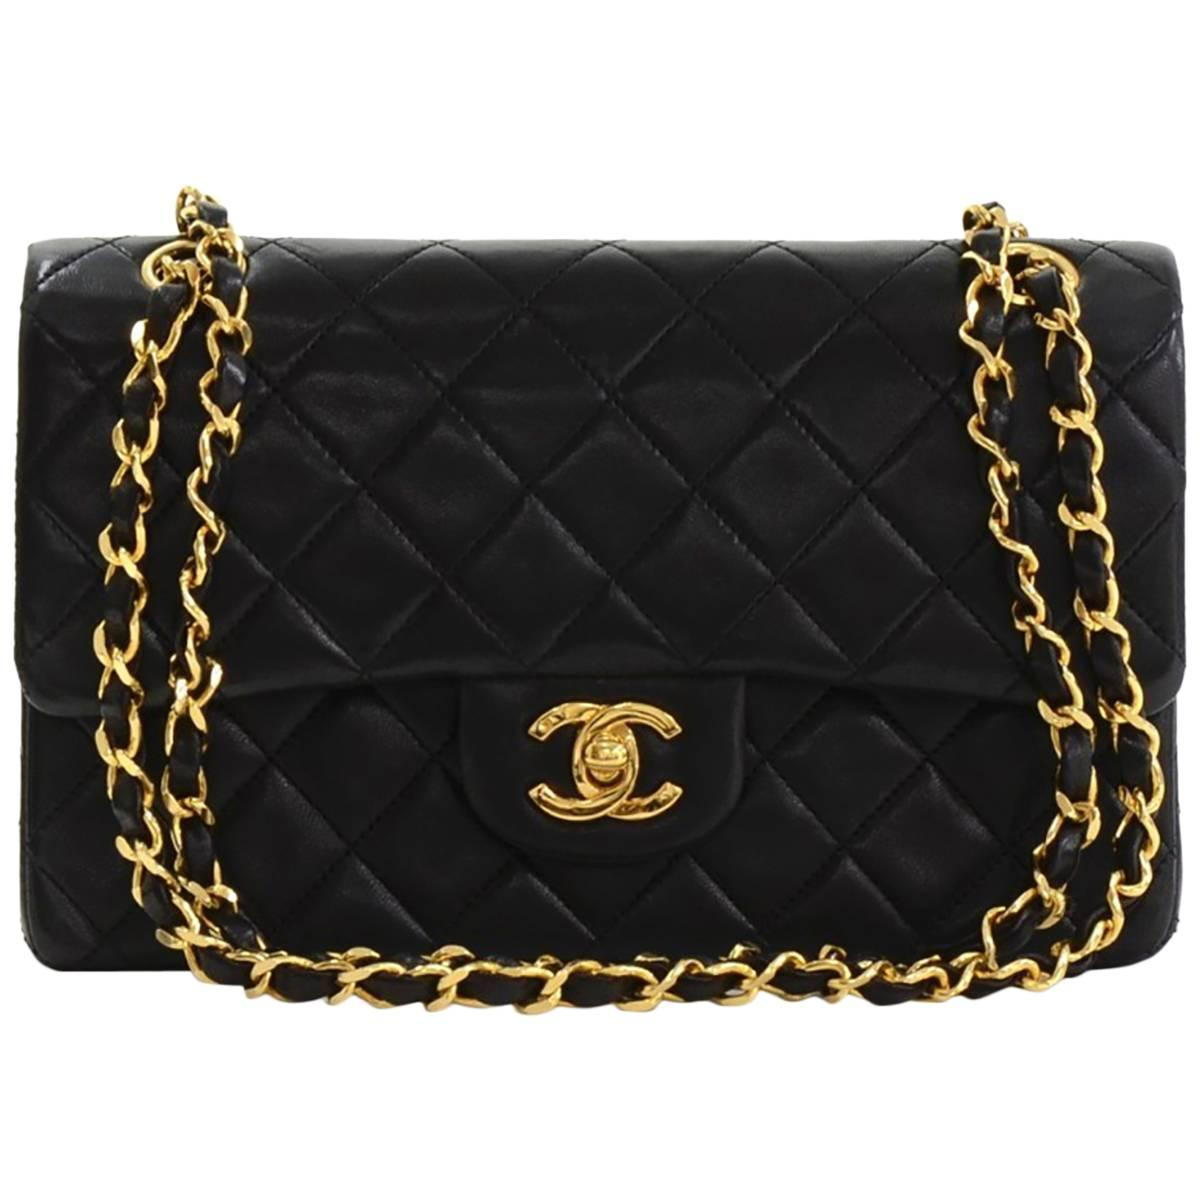 3791a83ab732 1990s Chanel Black Quilted Lambskin Vintage Small Classic Double Flap Bag  at 1stdibs